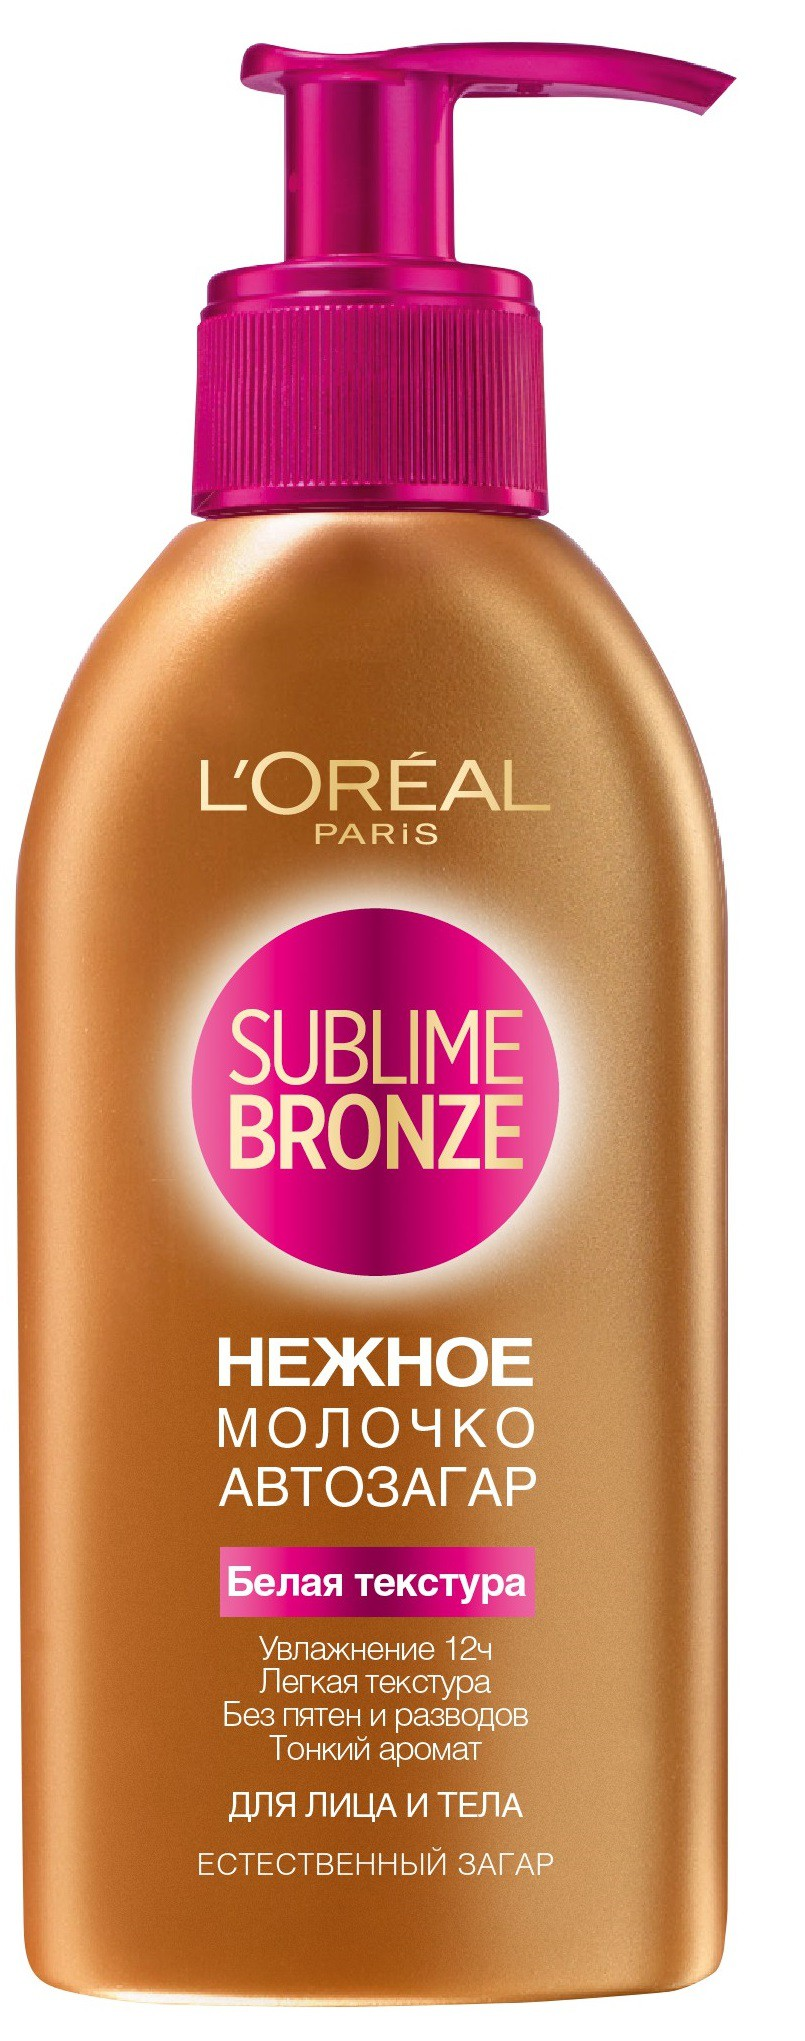 заказ L'Oreal Paris Sublime Bronze Молочко-автозагар для лица и тела, легкое, тающее, 150 мл онлайн